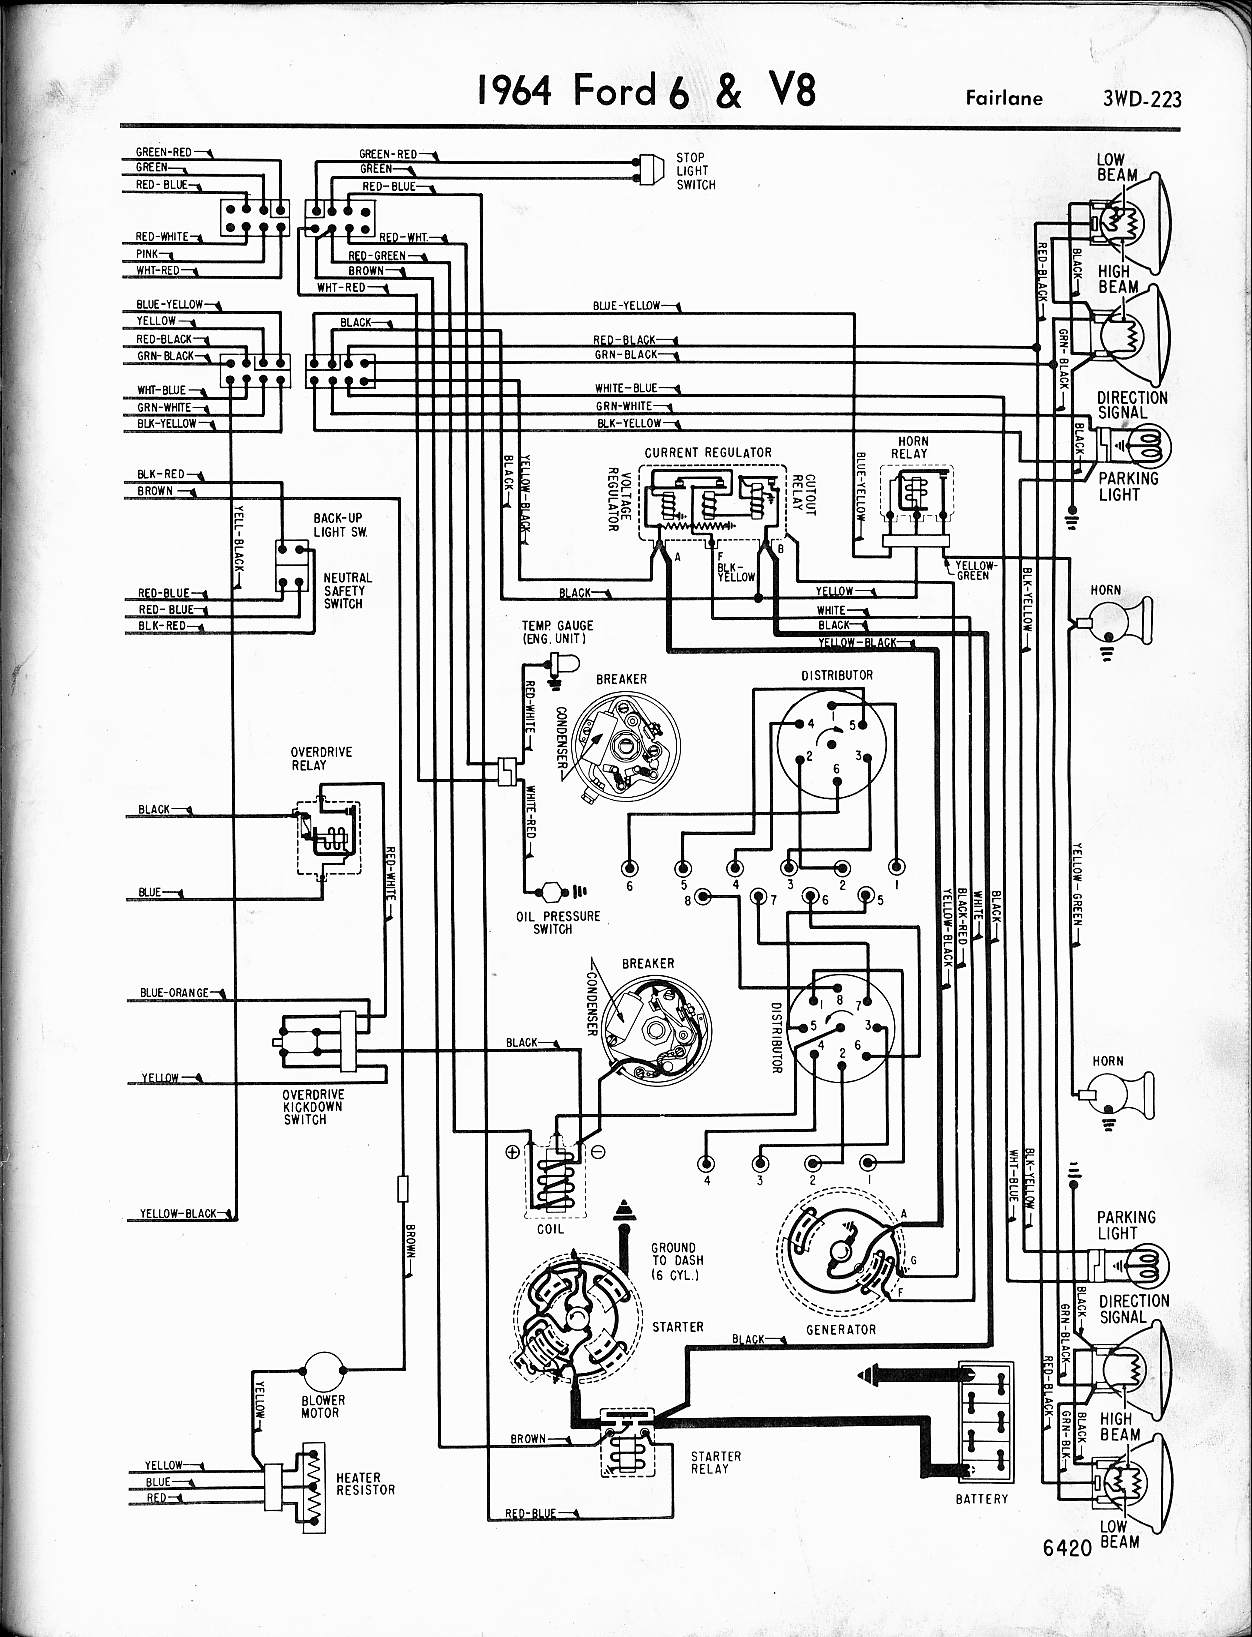 1964 Ford Econoline Van Wiring Diagram Library For Vw Bus 6 V8 Fairlane Right 57 65 Diagrams